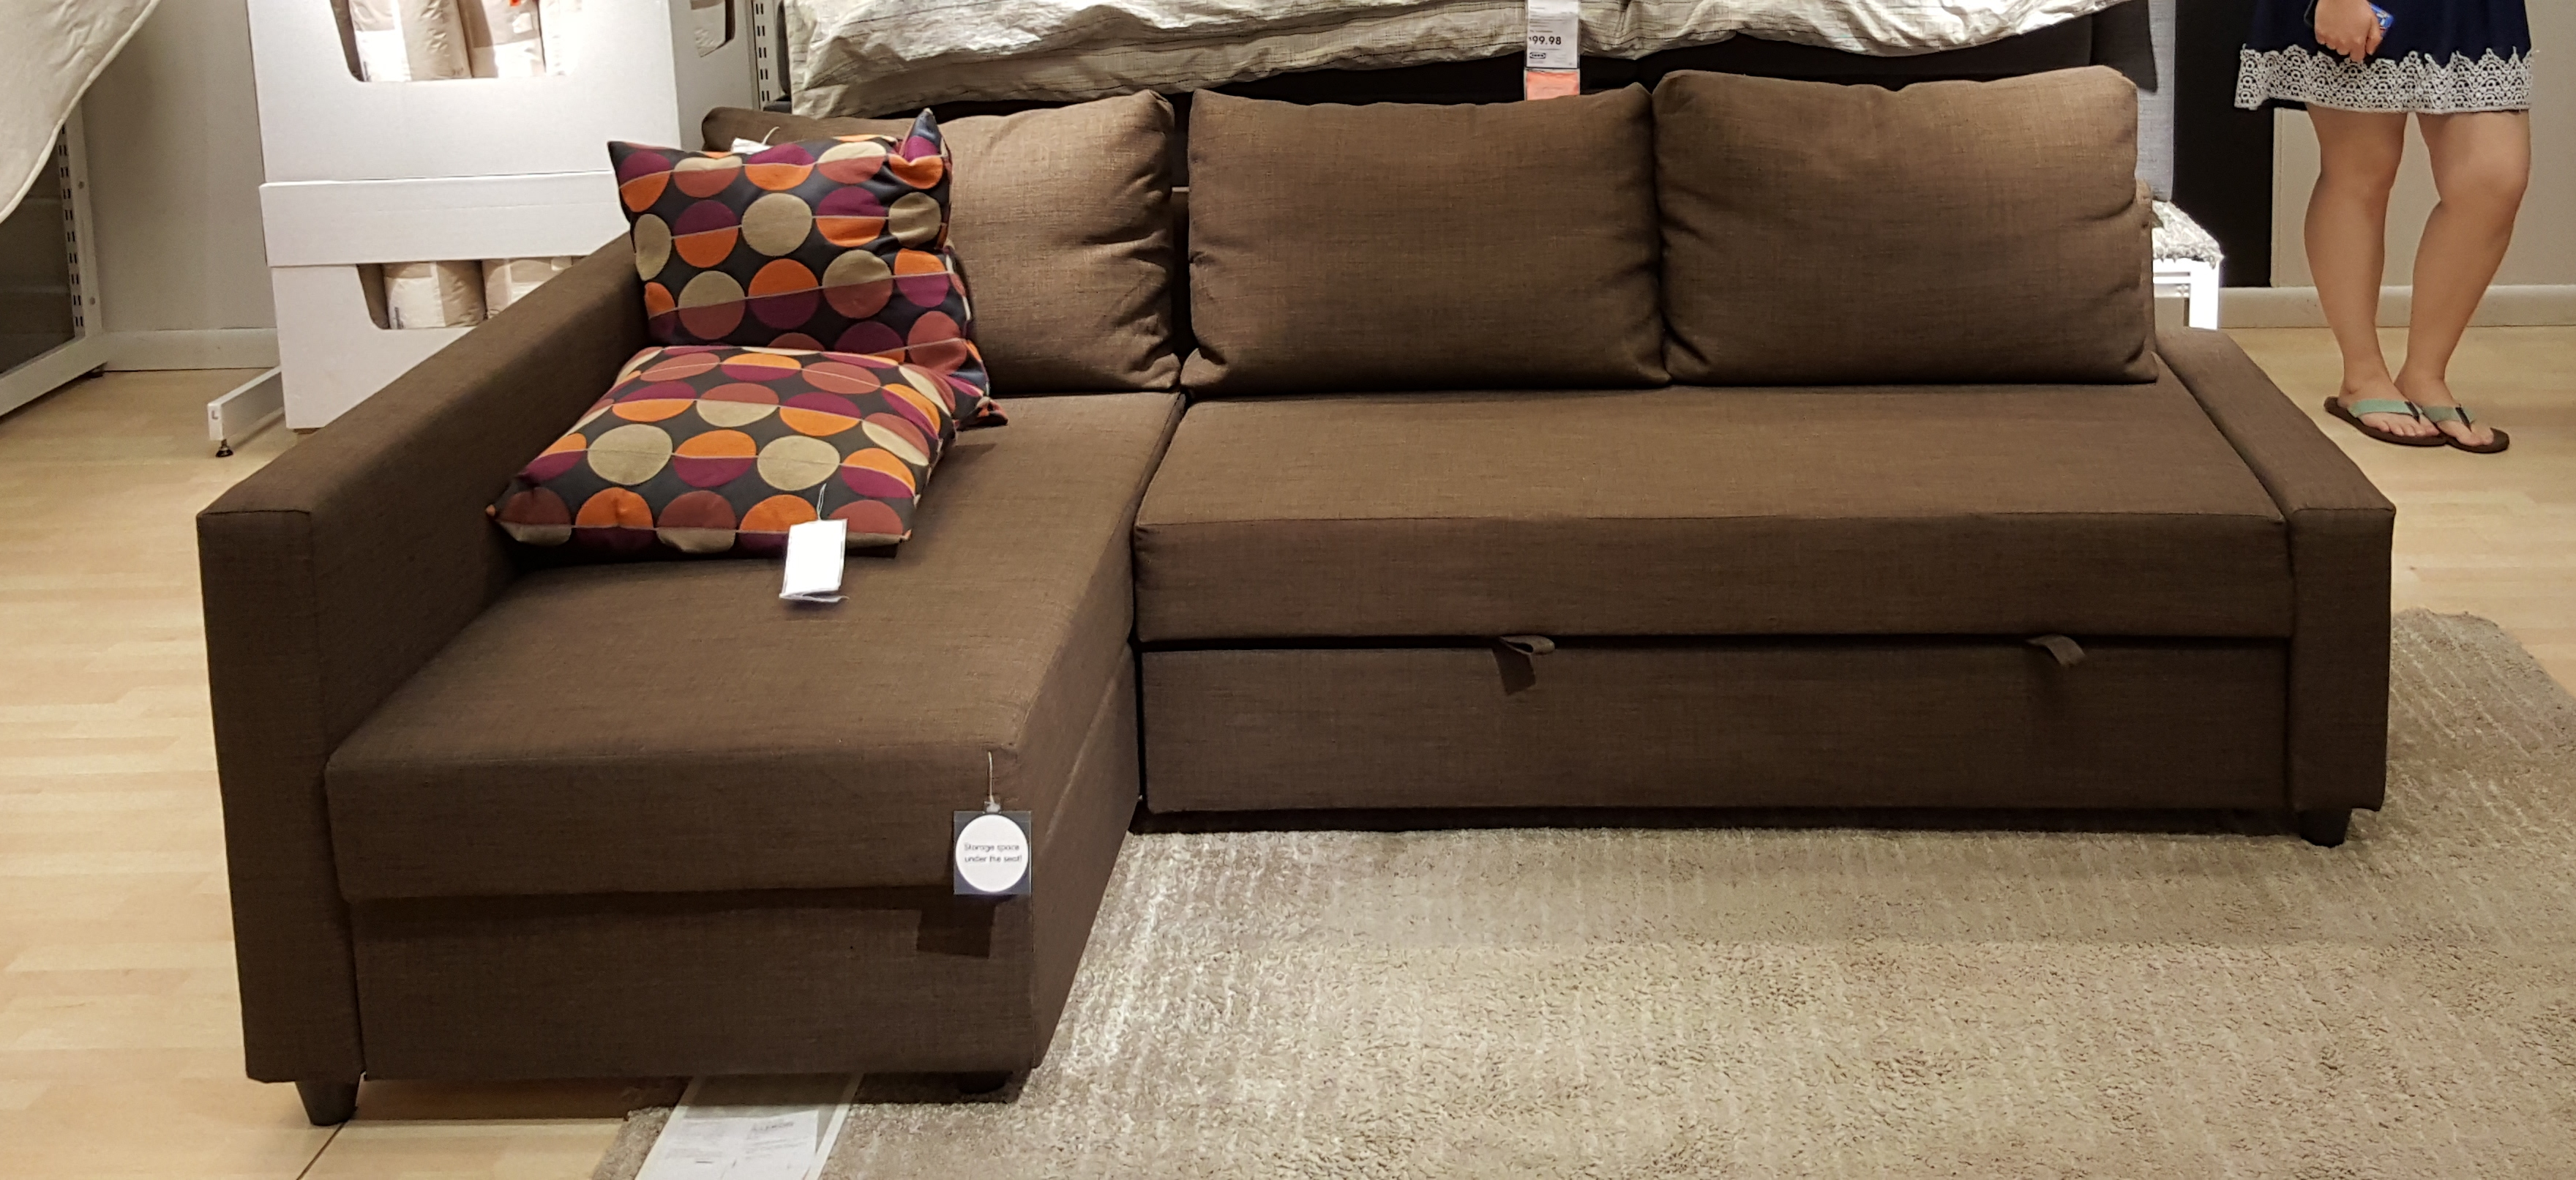 Ikea schlafcouch friheten  The Schumin Web » New couch!